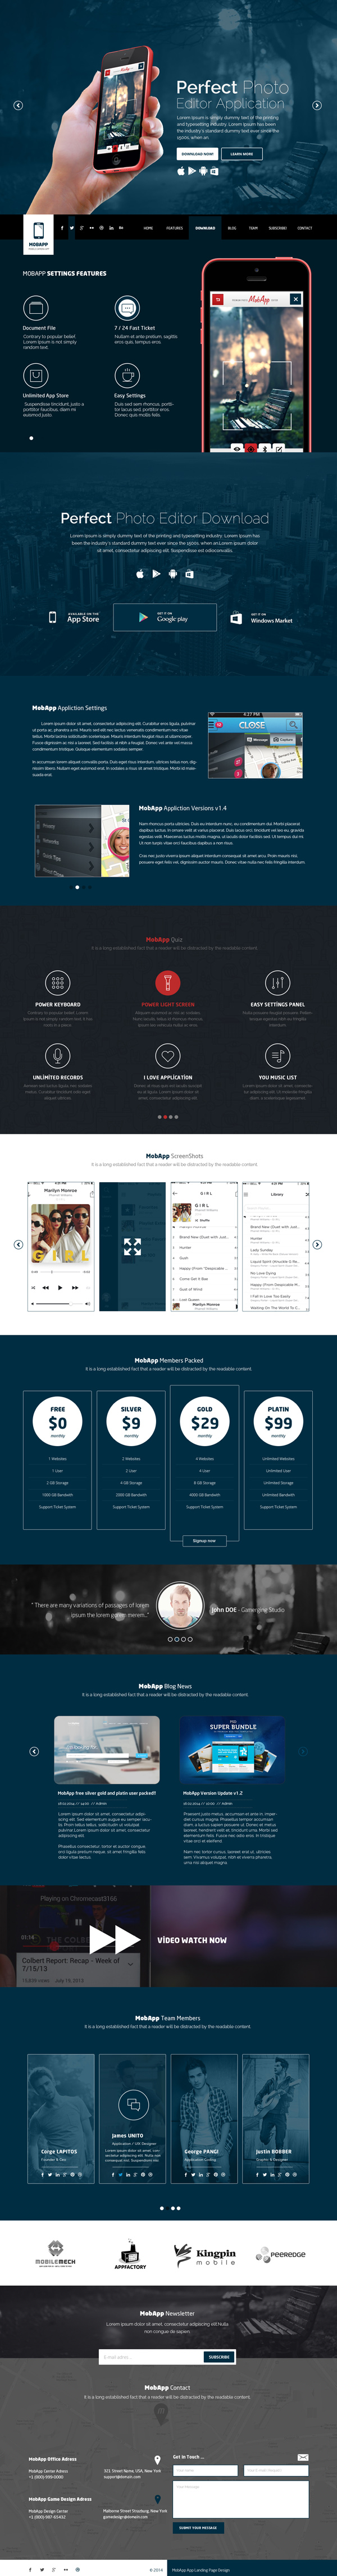 HTML One Page Website Templates With UIUX Experience Design - Single page landing page template